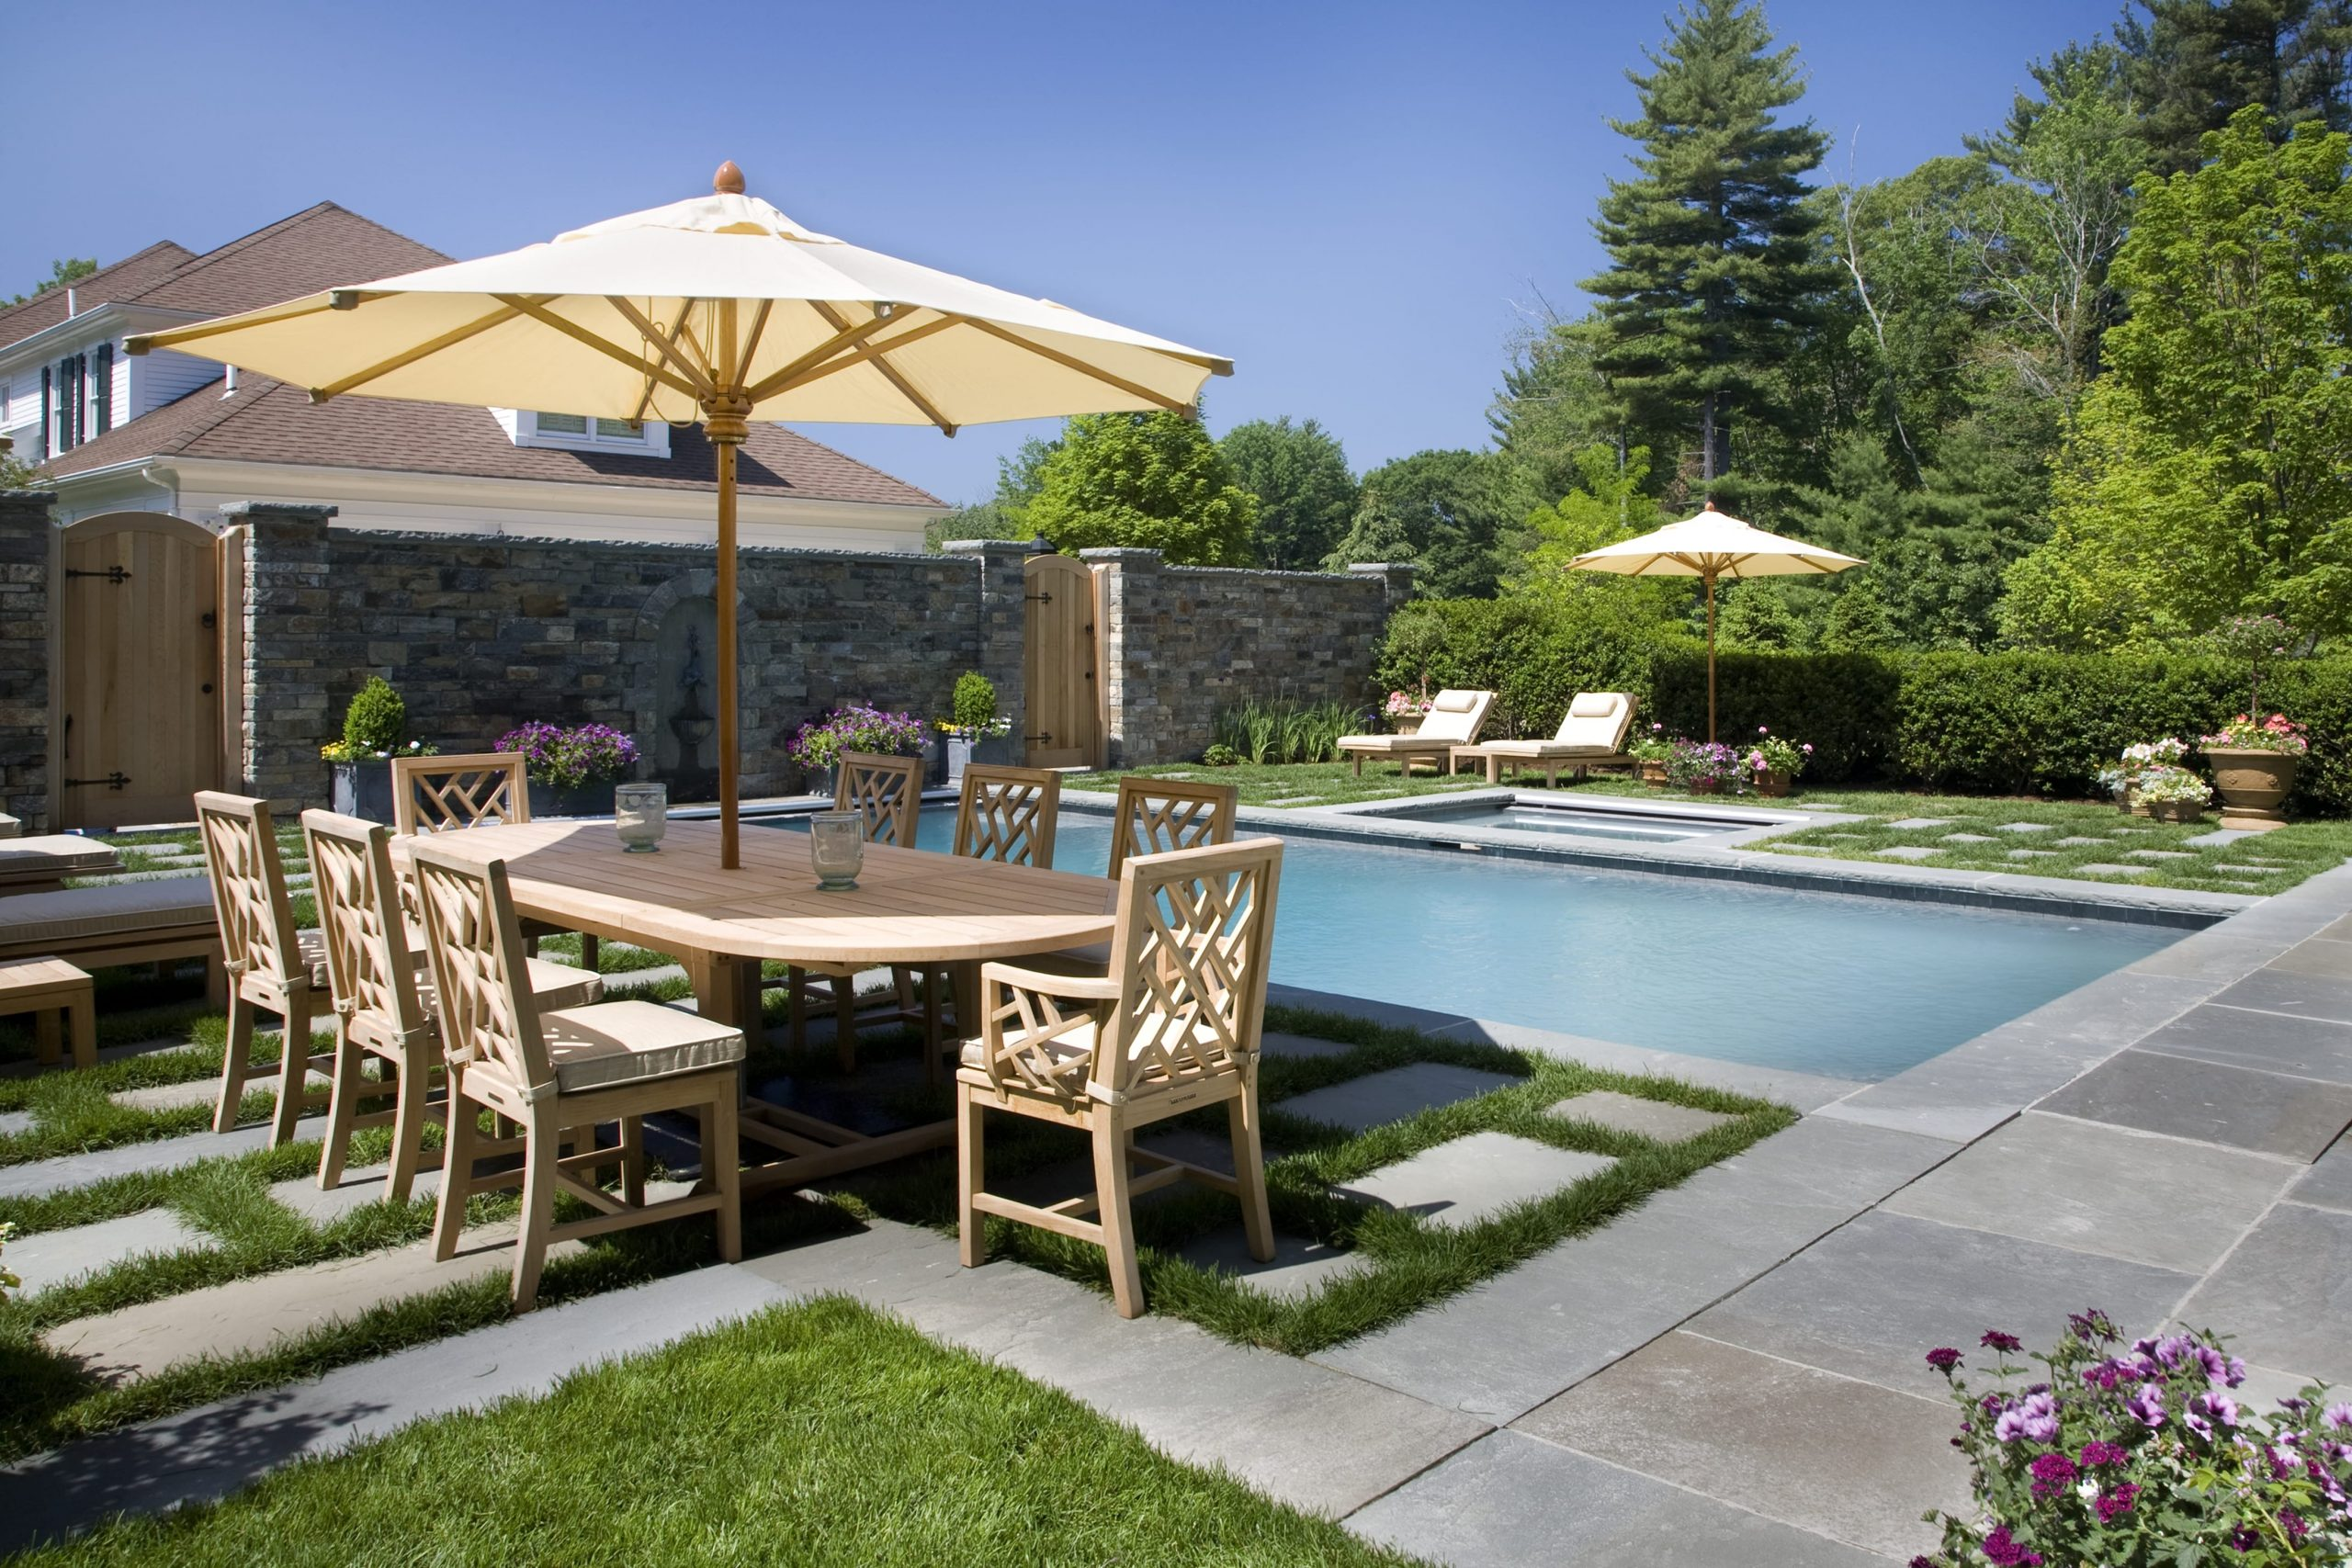 Poolside residential landscaping project done by Greenscape.